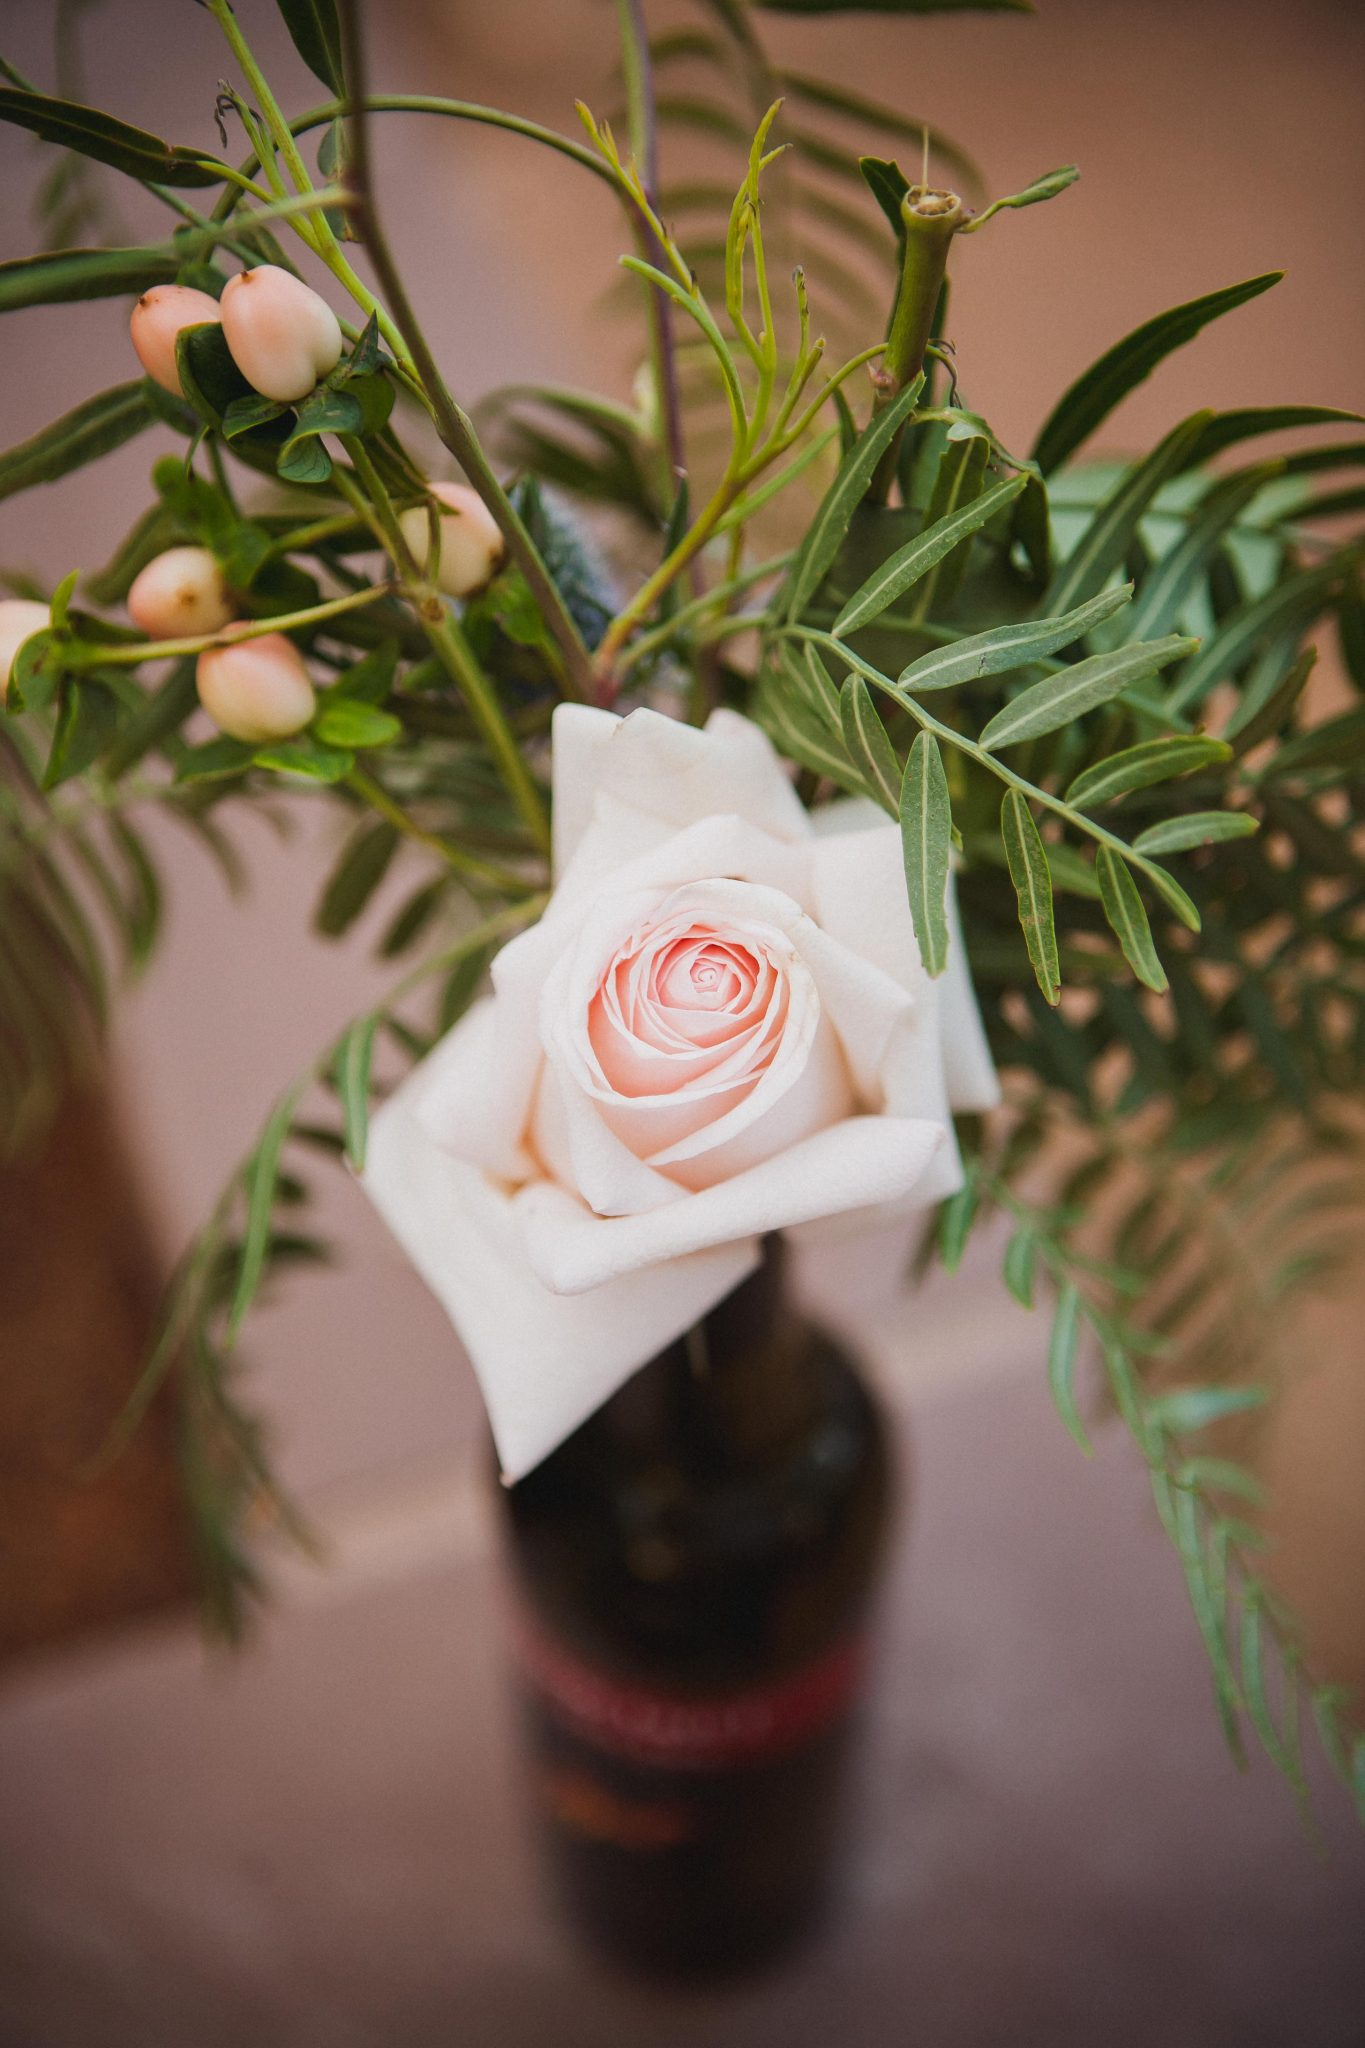 Light pink rose and green leaves in a beer bottle used as a wedding centerpiece